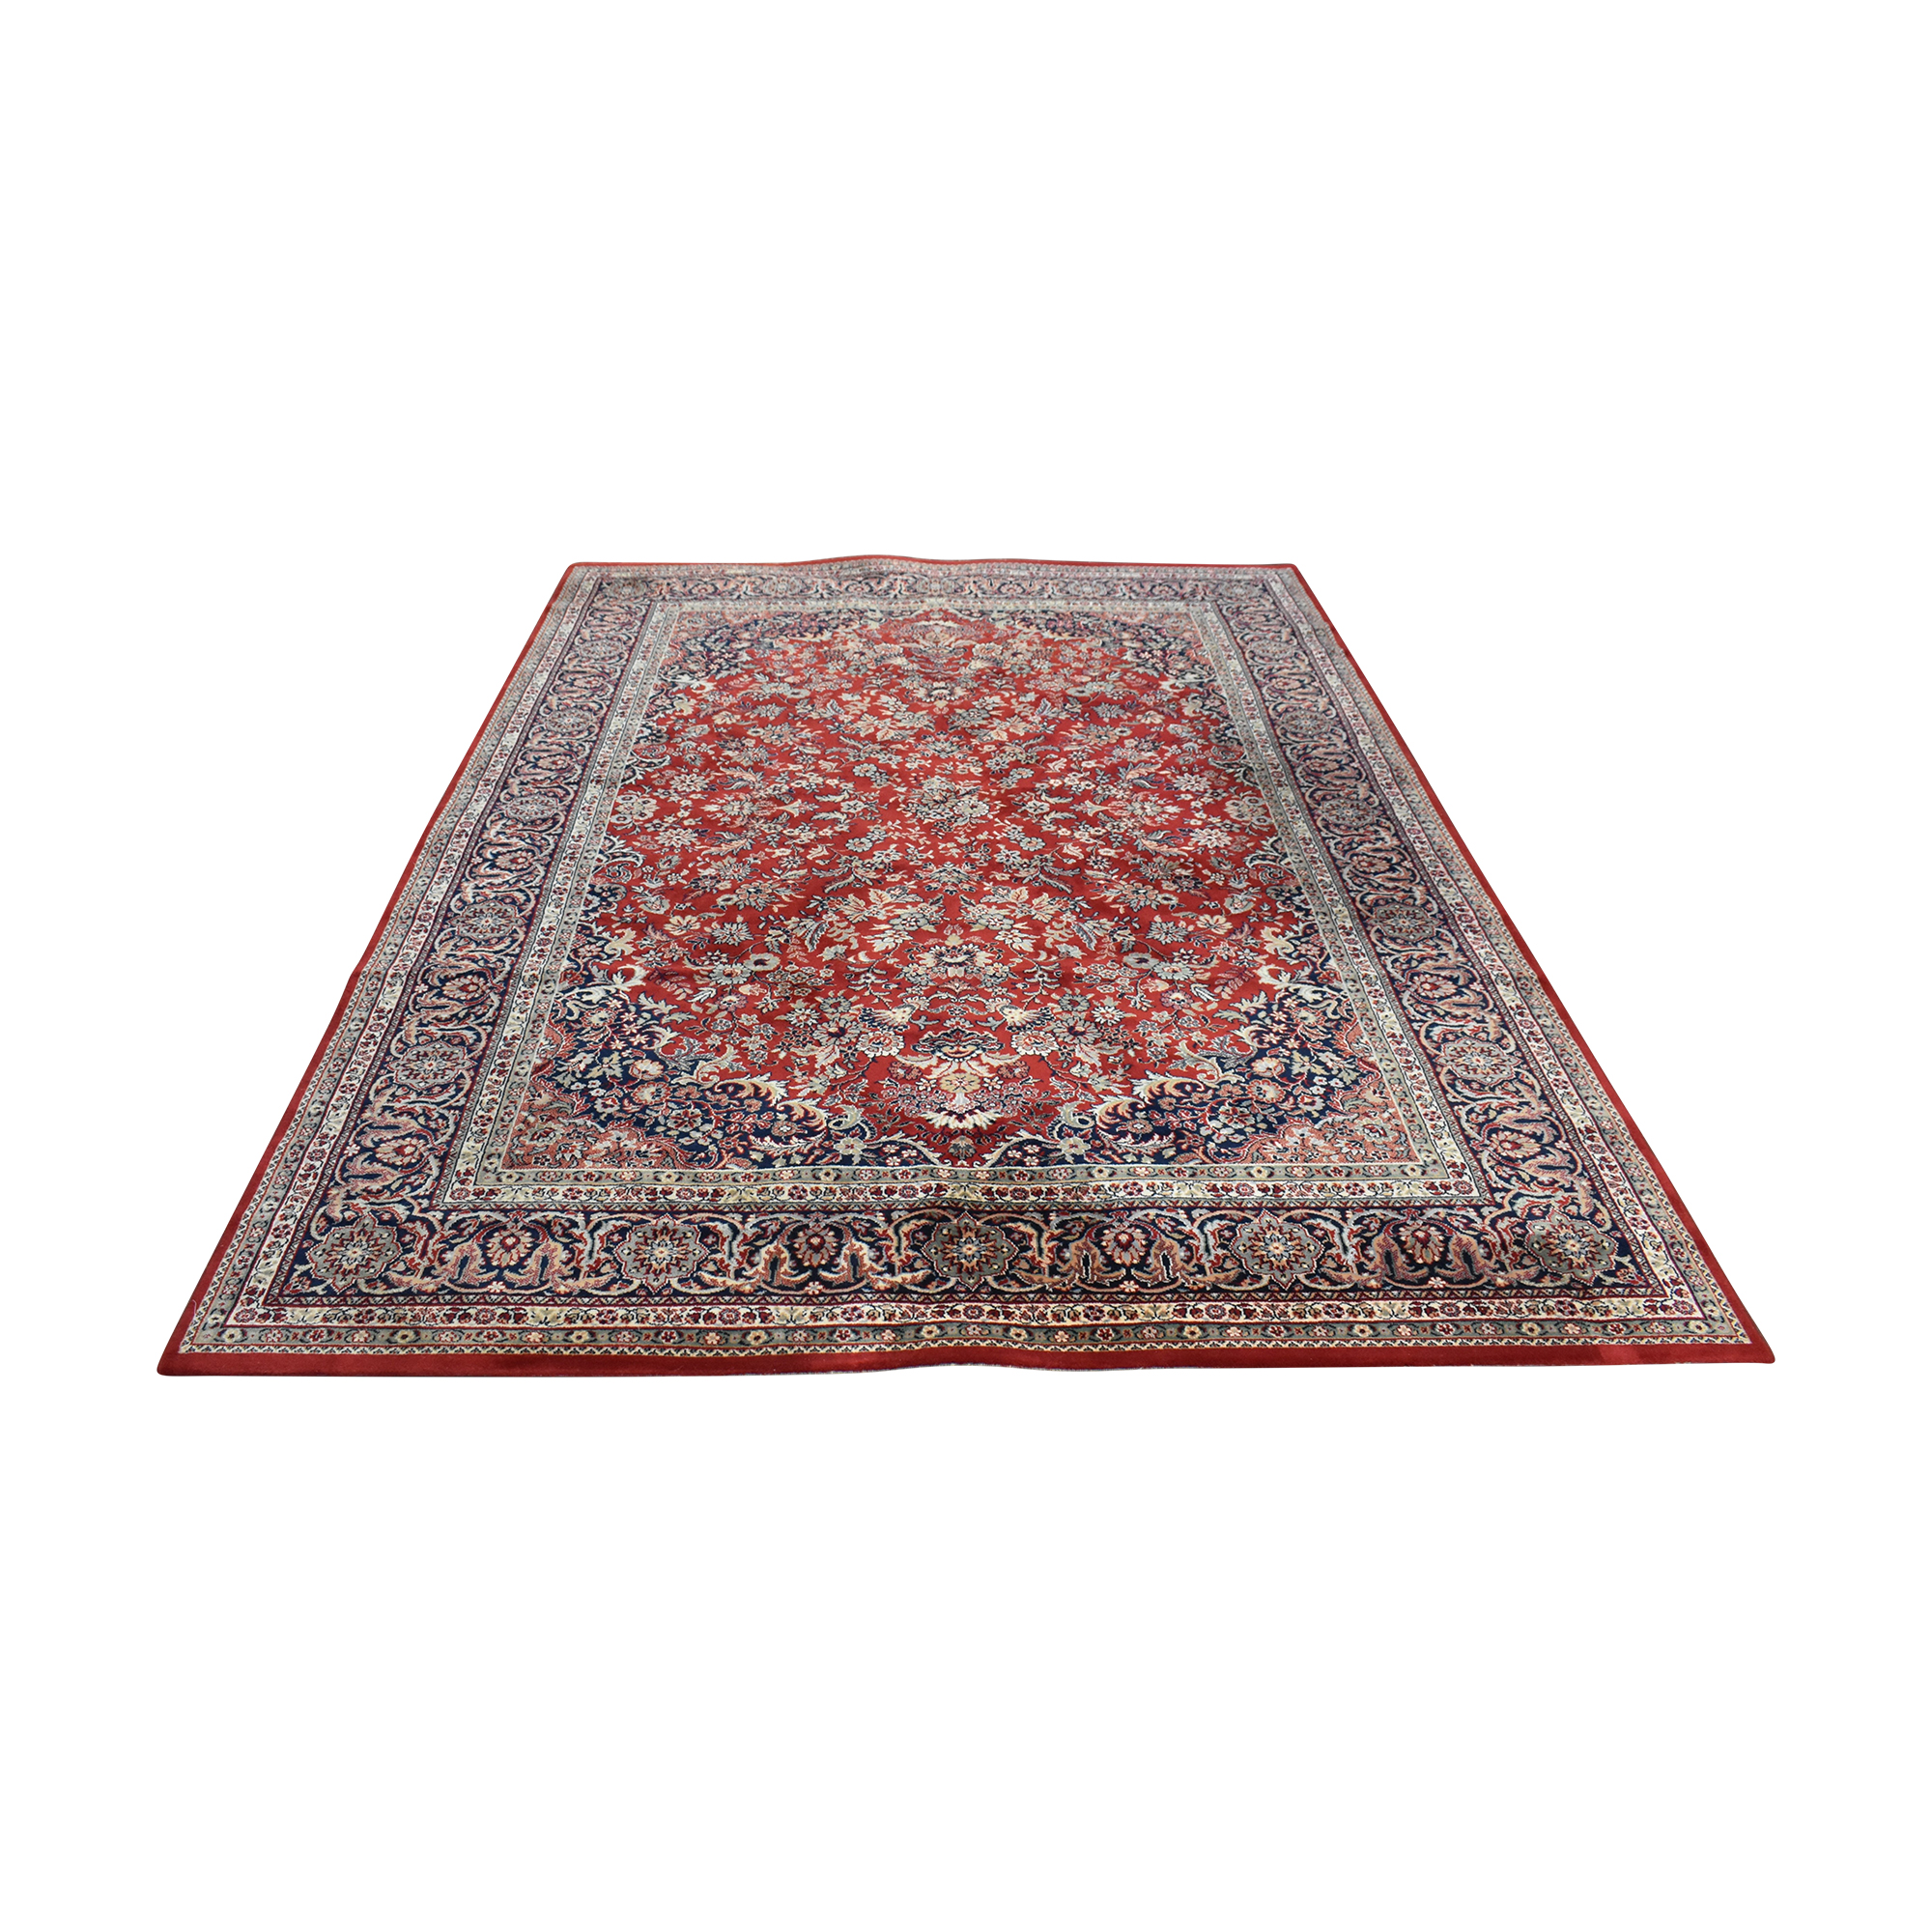 ABC Carpet & Home ABC Carpet & Home Traditional Area Rug Rugs